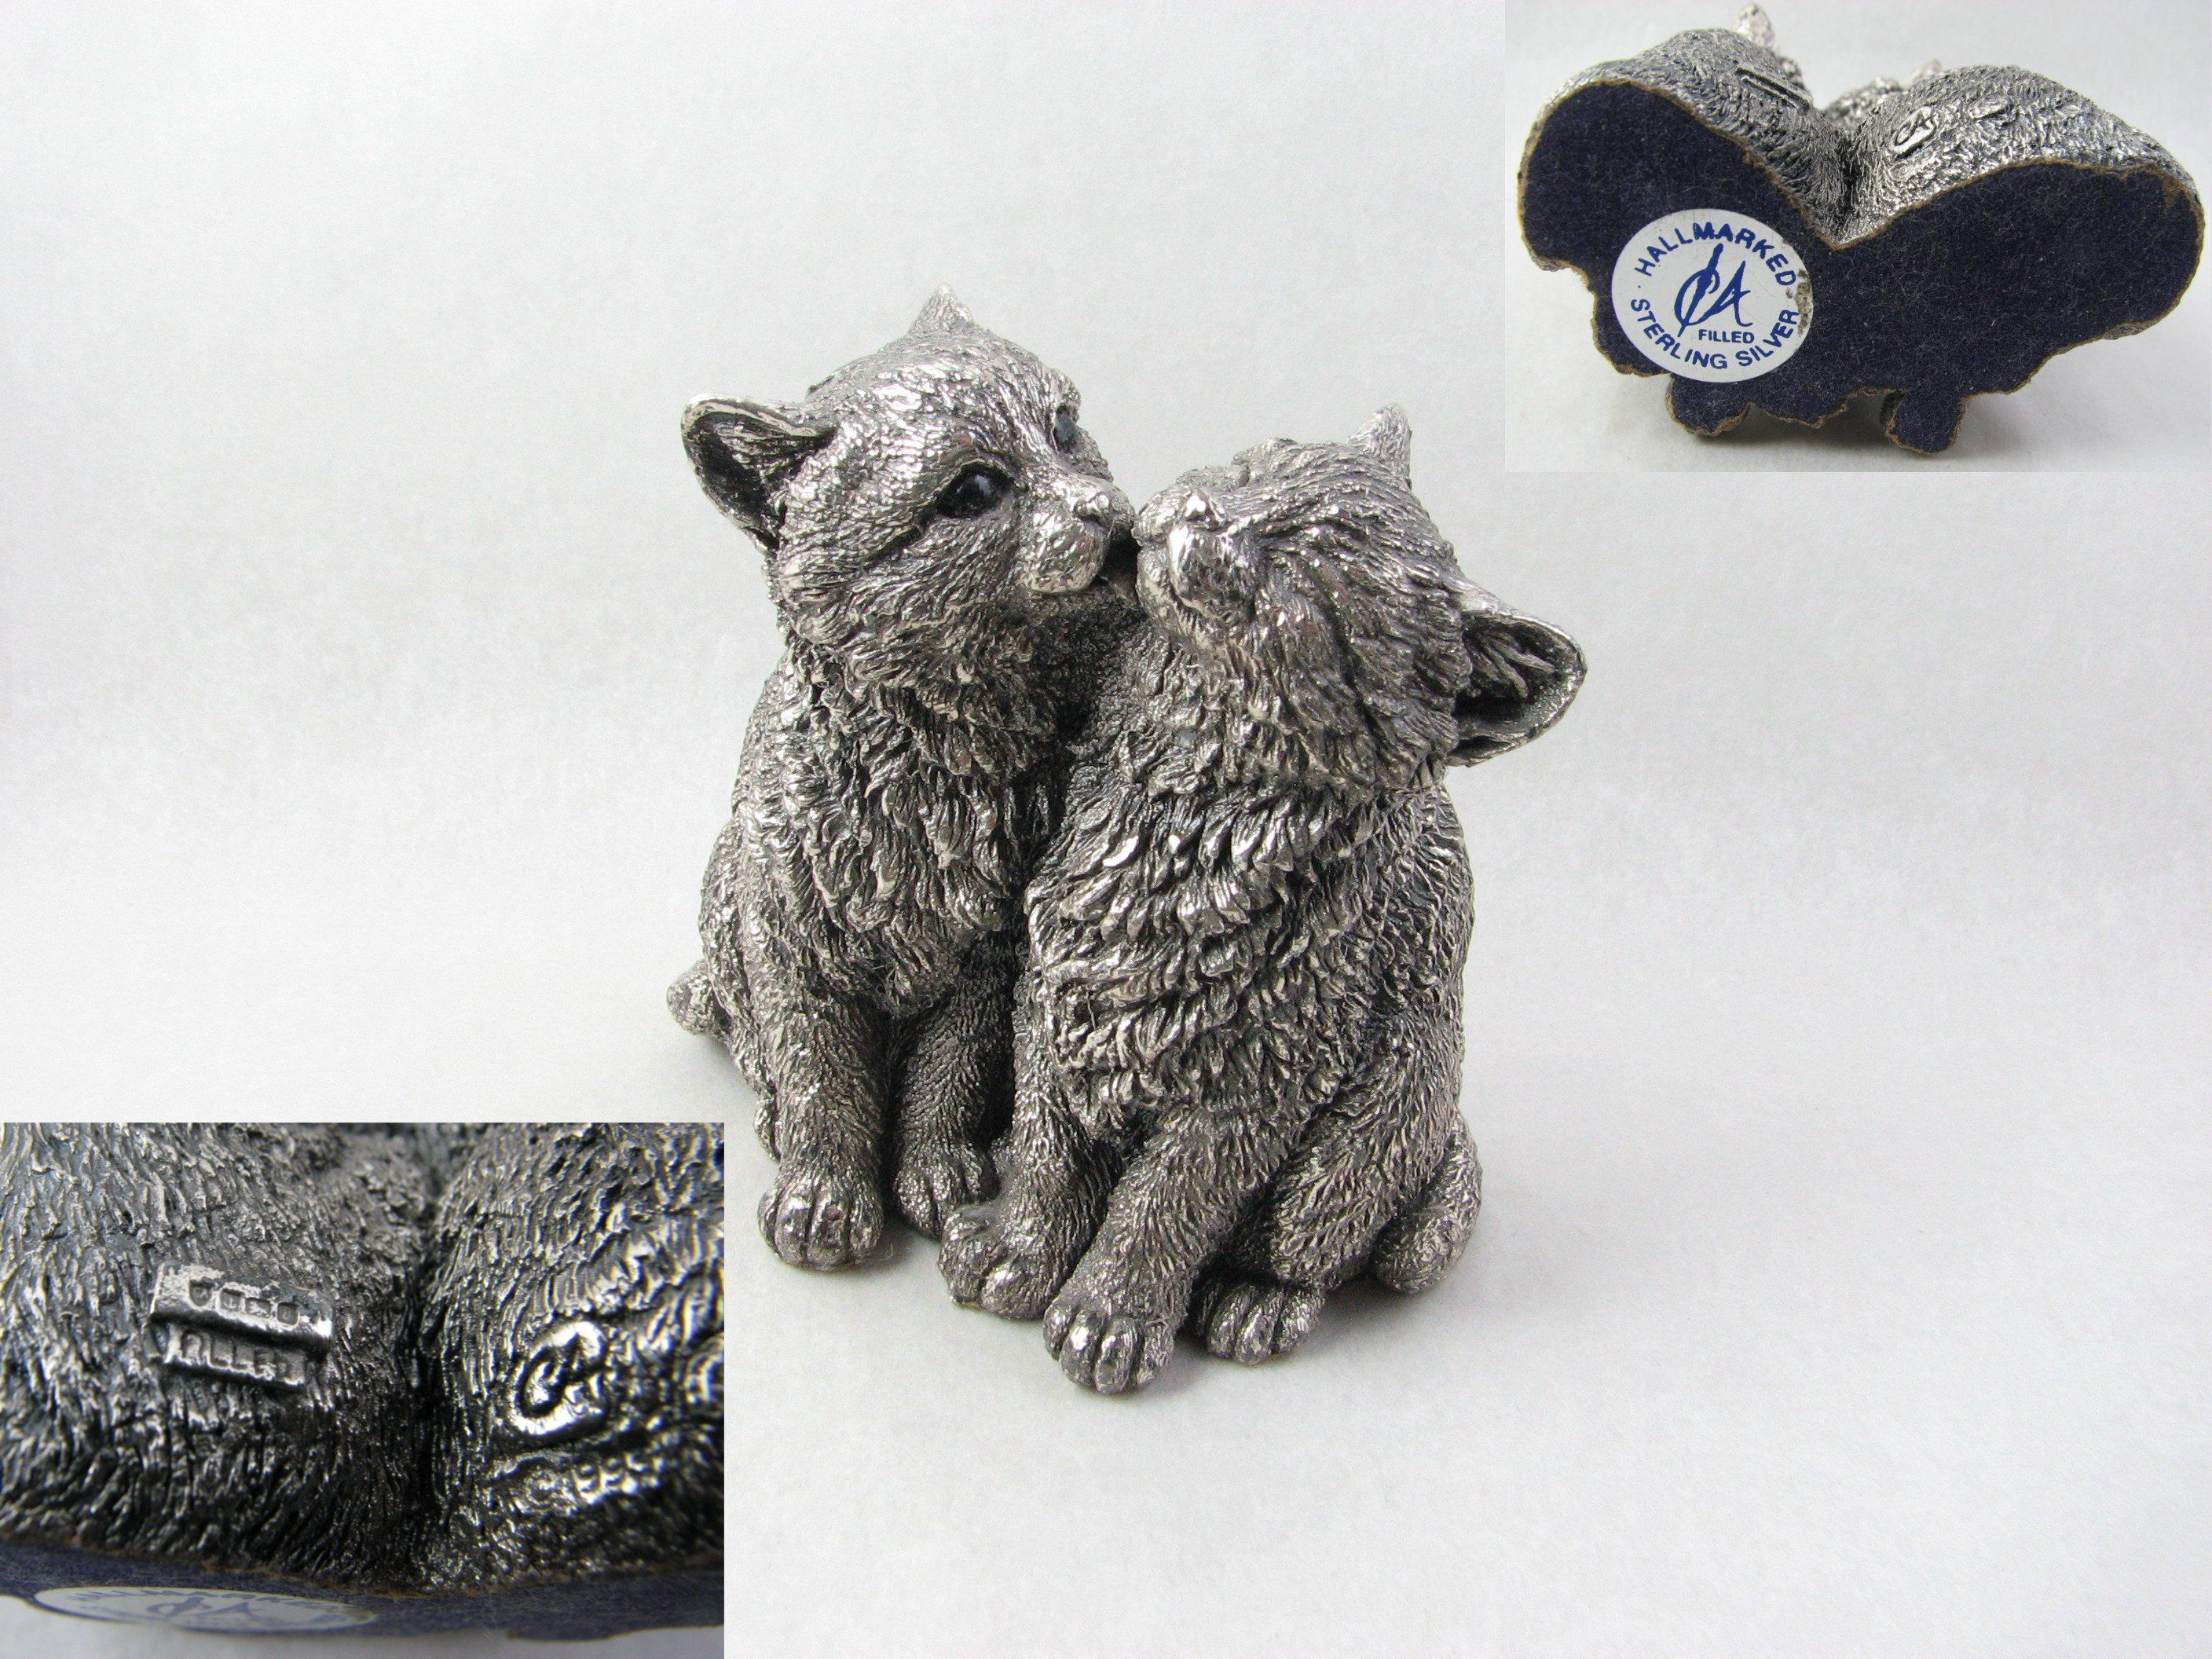 Country Artists Sterling Silver Filled Kittens Grooming Paperweight Birmingham 1995 Labelled And Hallmarked Kitten Grooming Country Artists Antique Metal